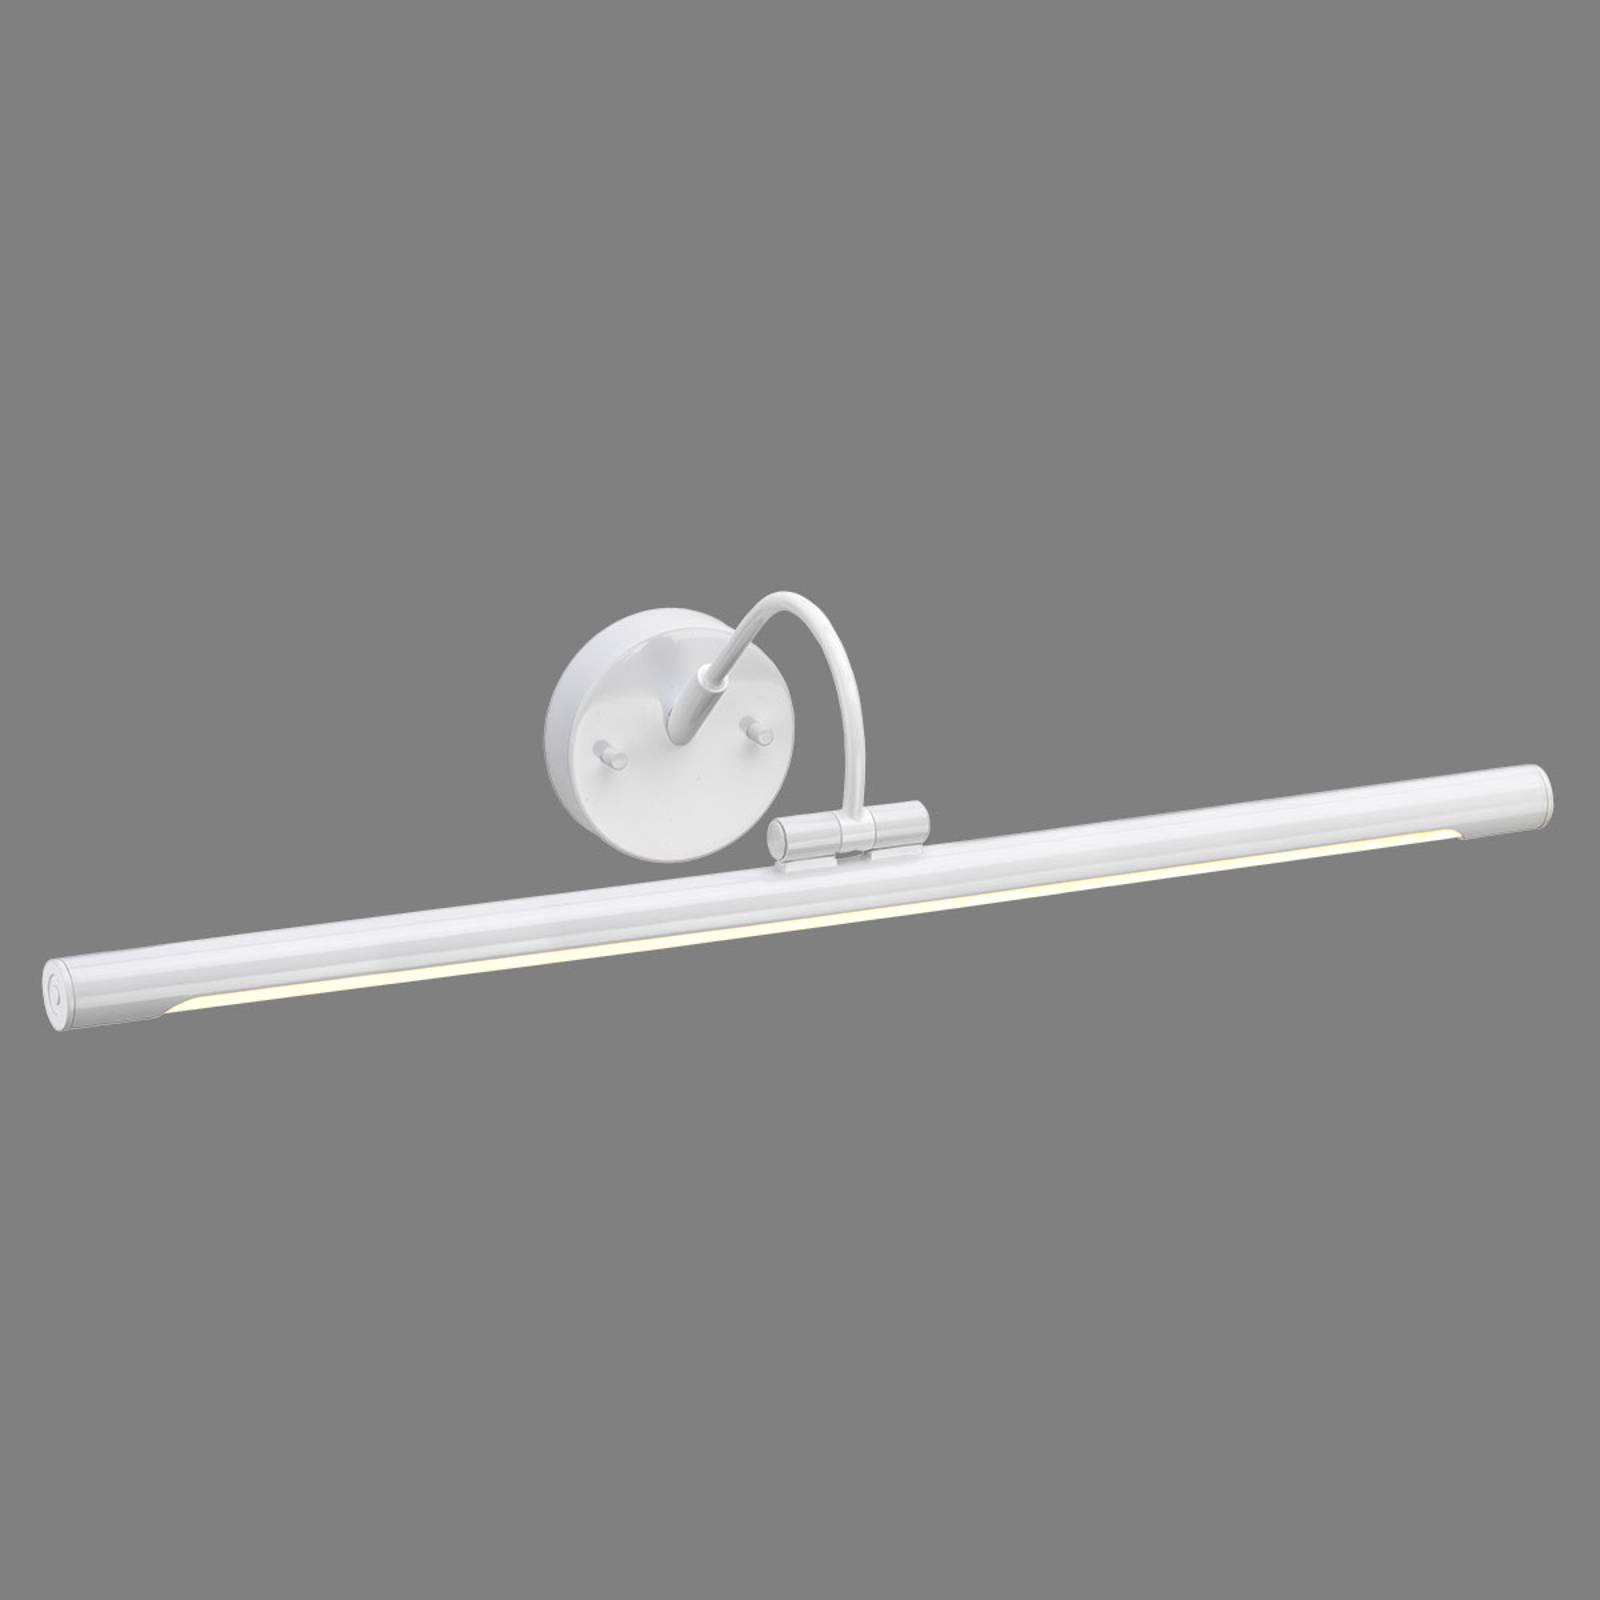 LED picture light Alton in white, 67 cm from Elstead